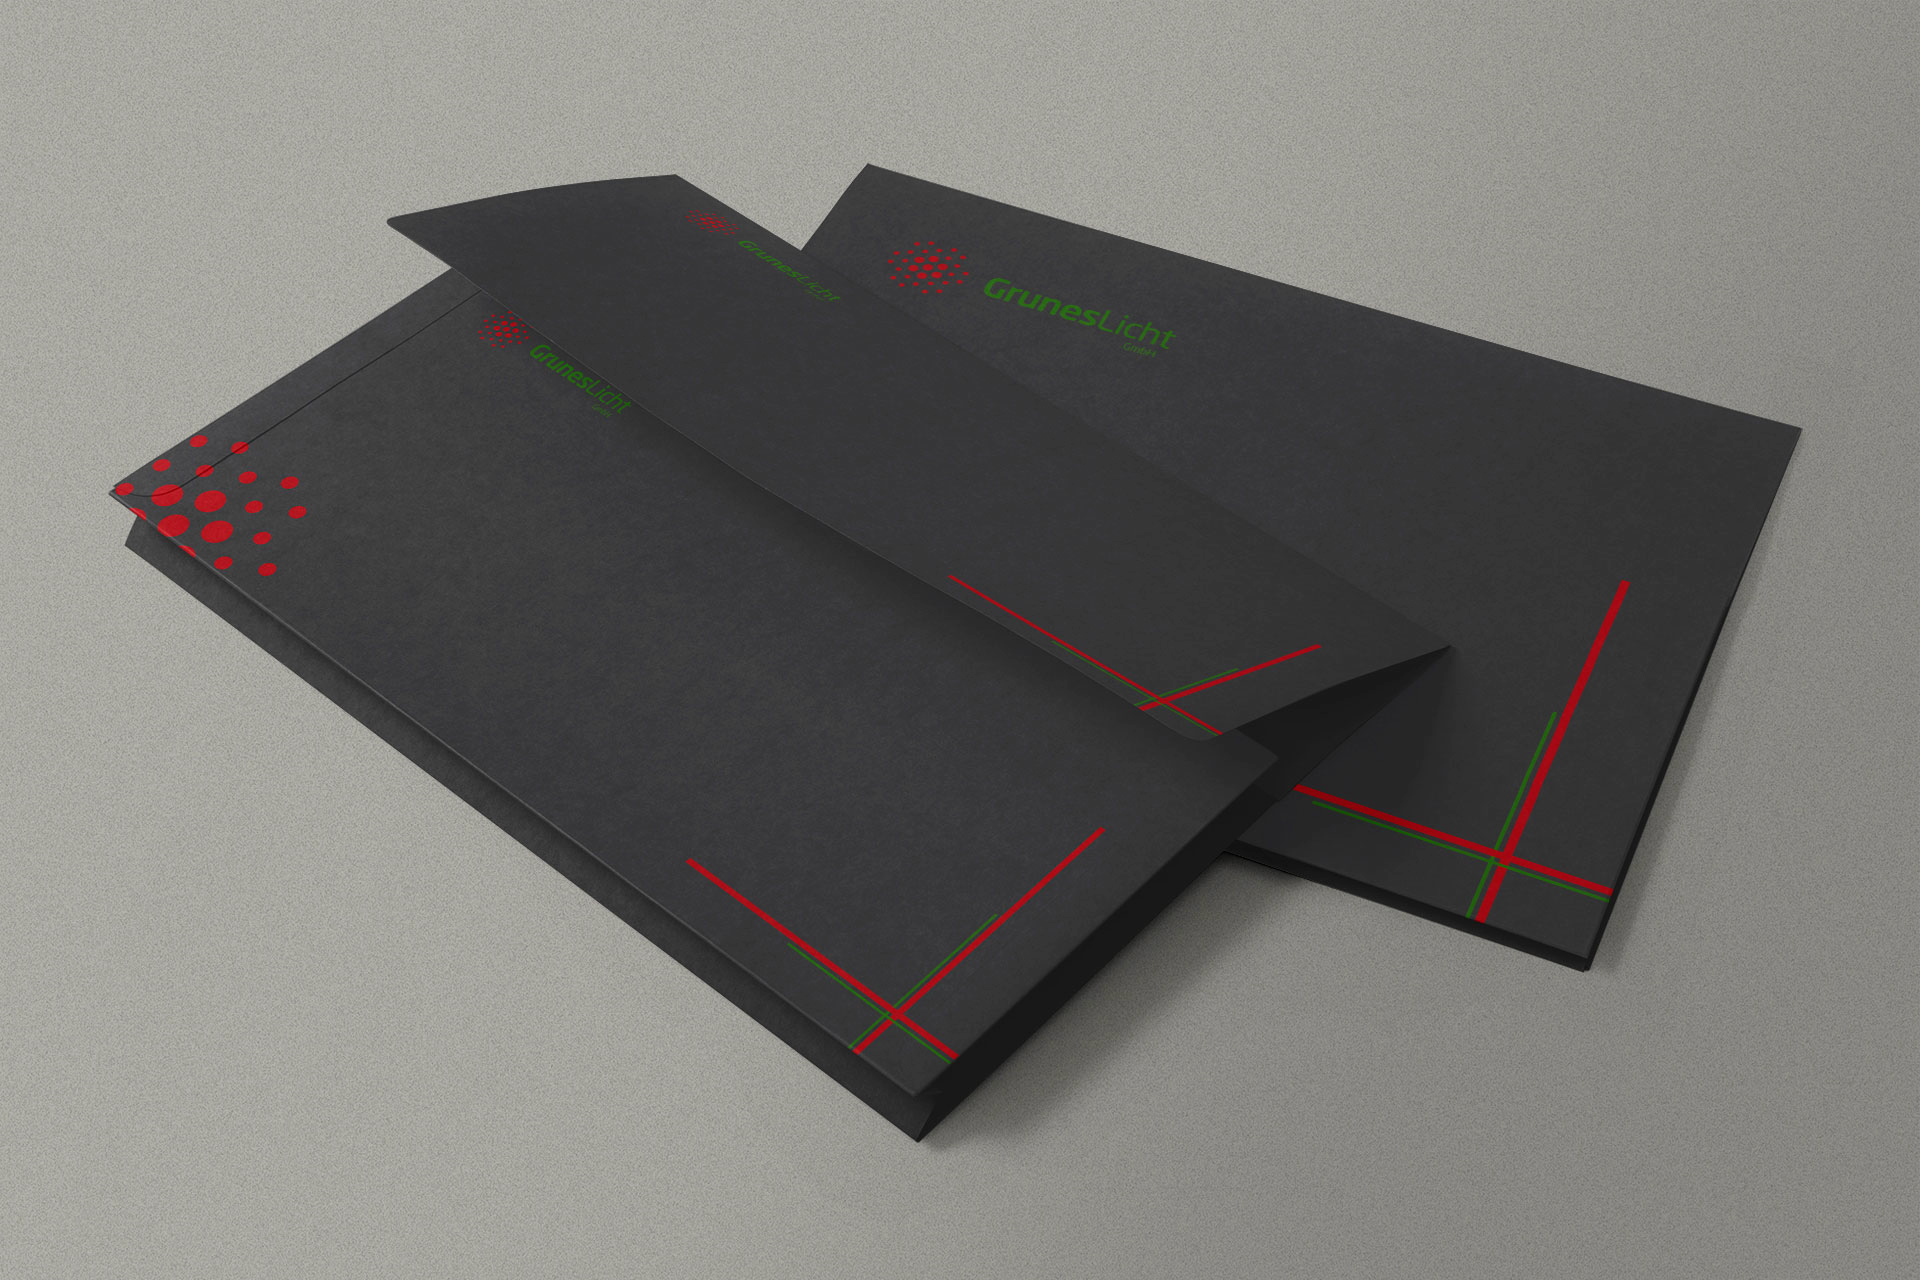 Black stationery design mockup ideas Envelope| Red Dots| Neon Green| Abstract lines| Affordable Logo| Get Solutions